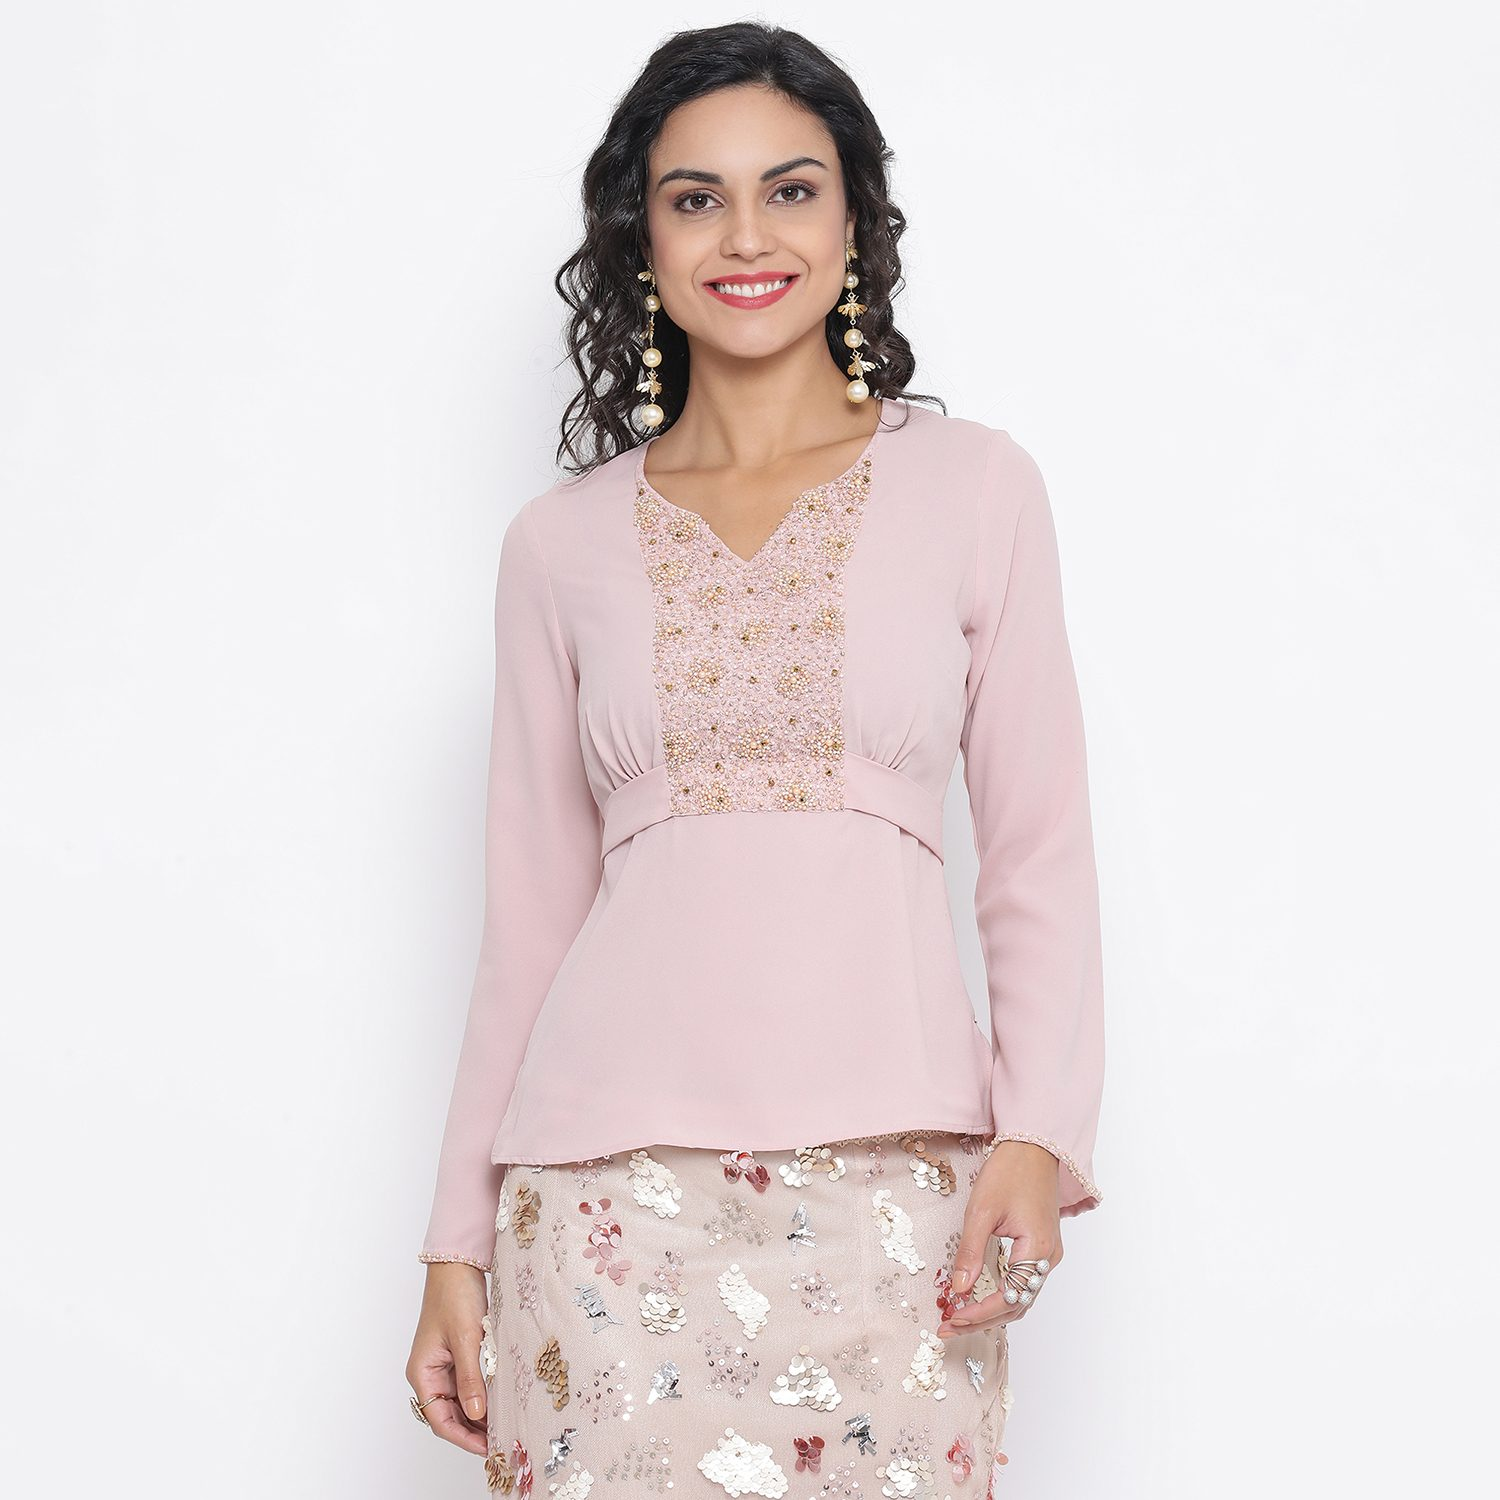 Buy Pink Georgette Top With Emb. At Yoke For Women